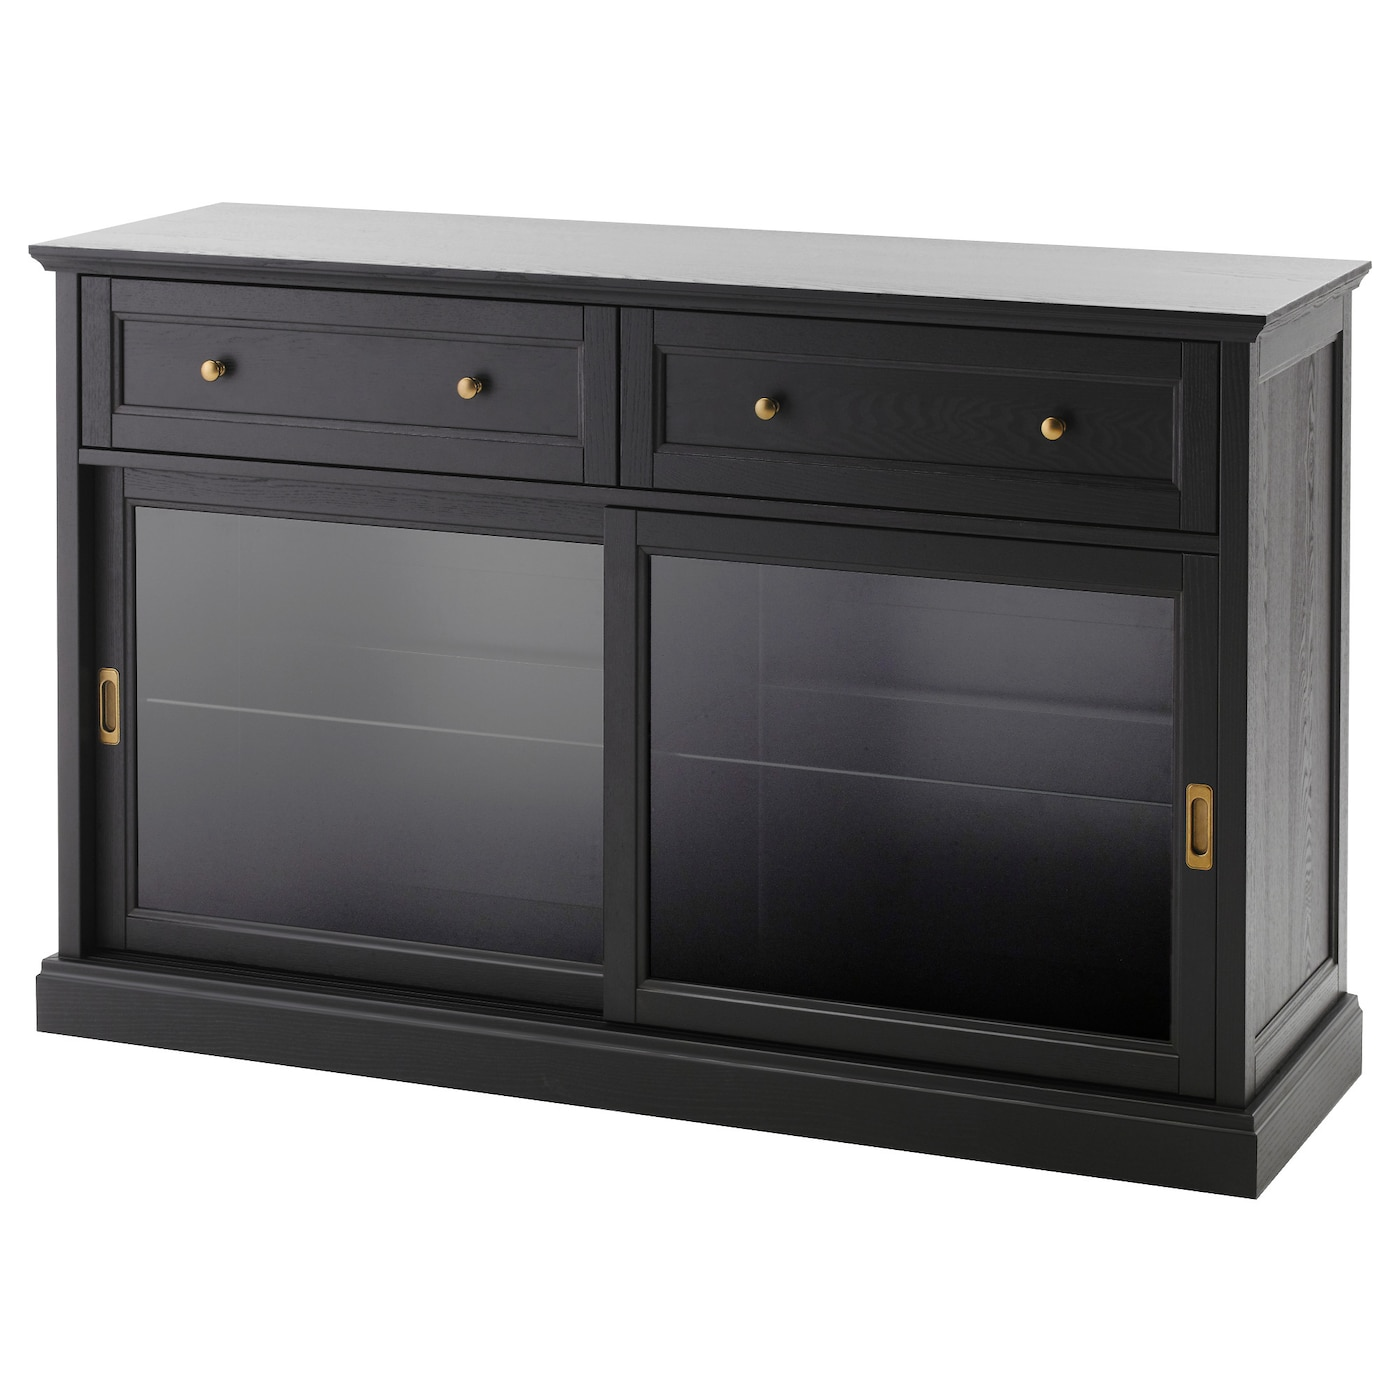 ikea sideboard buffet images galleries with a bite. Black Bedroom Furniture Sets. Home Design Ideas